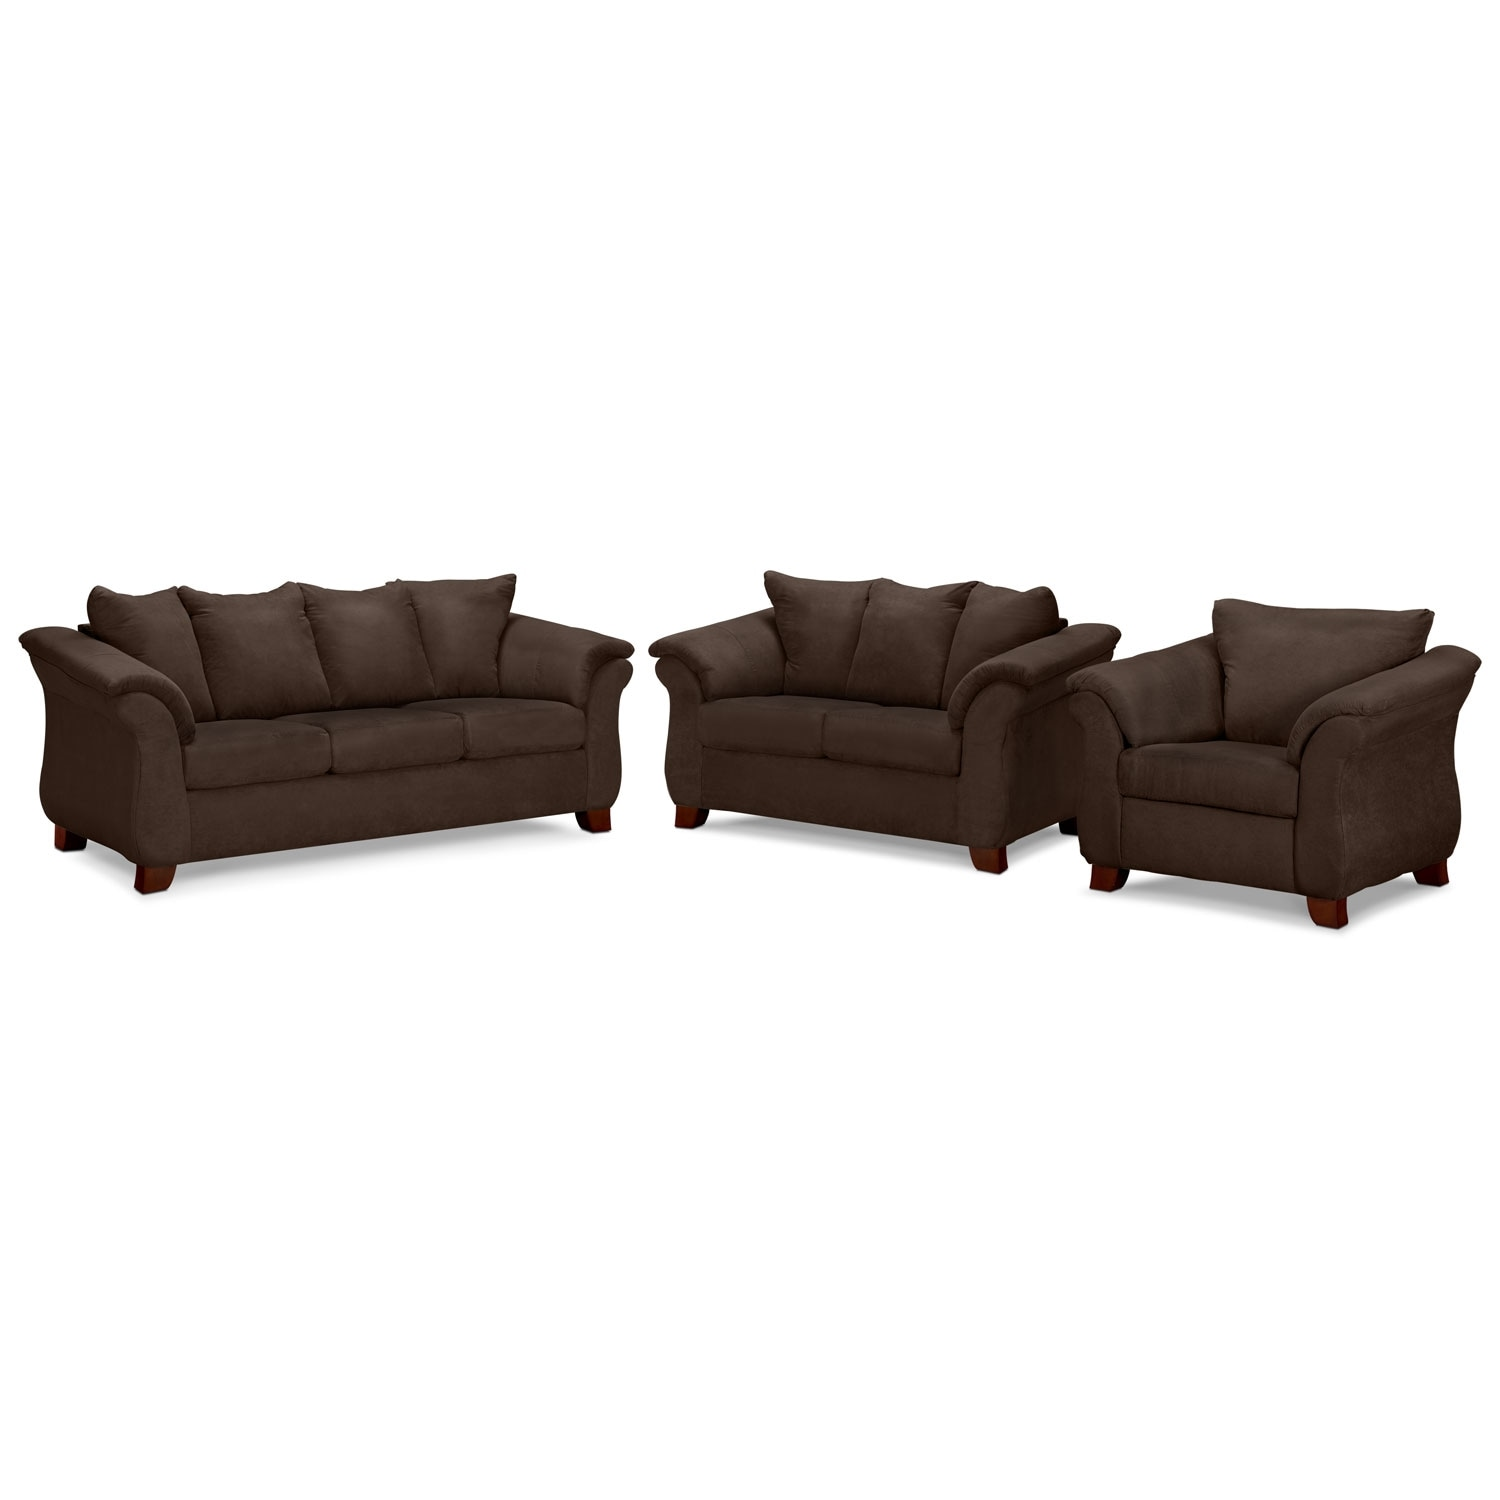 Living Room Furniture - Adrian Sofa, Loveseat and Chair Set - Chocolate